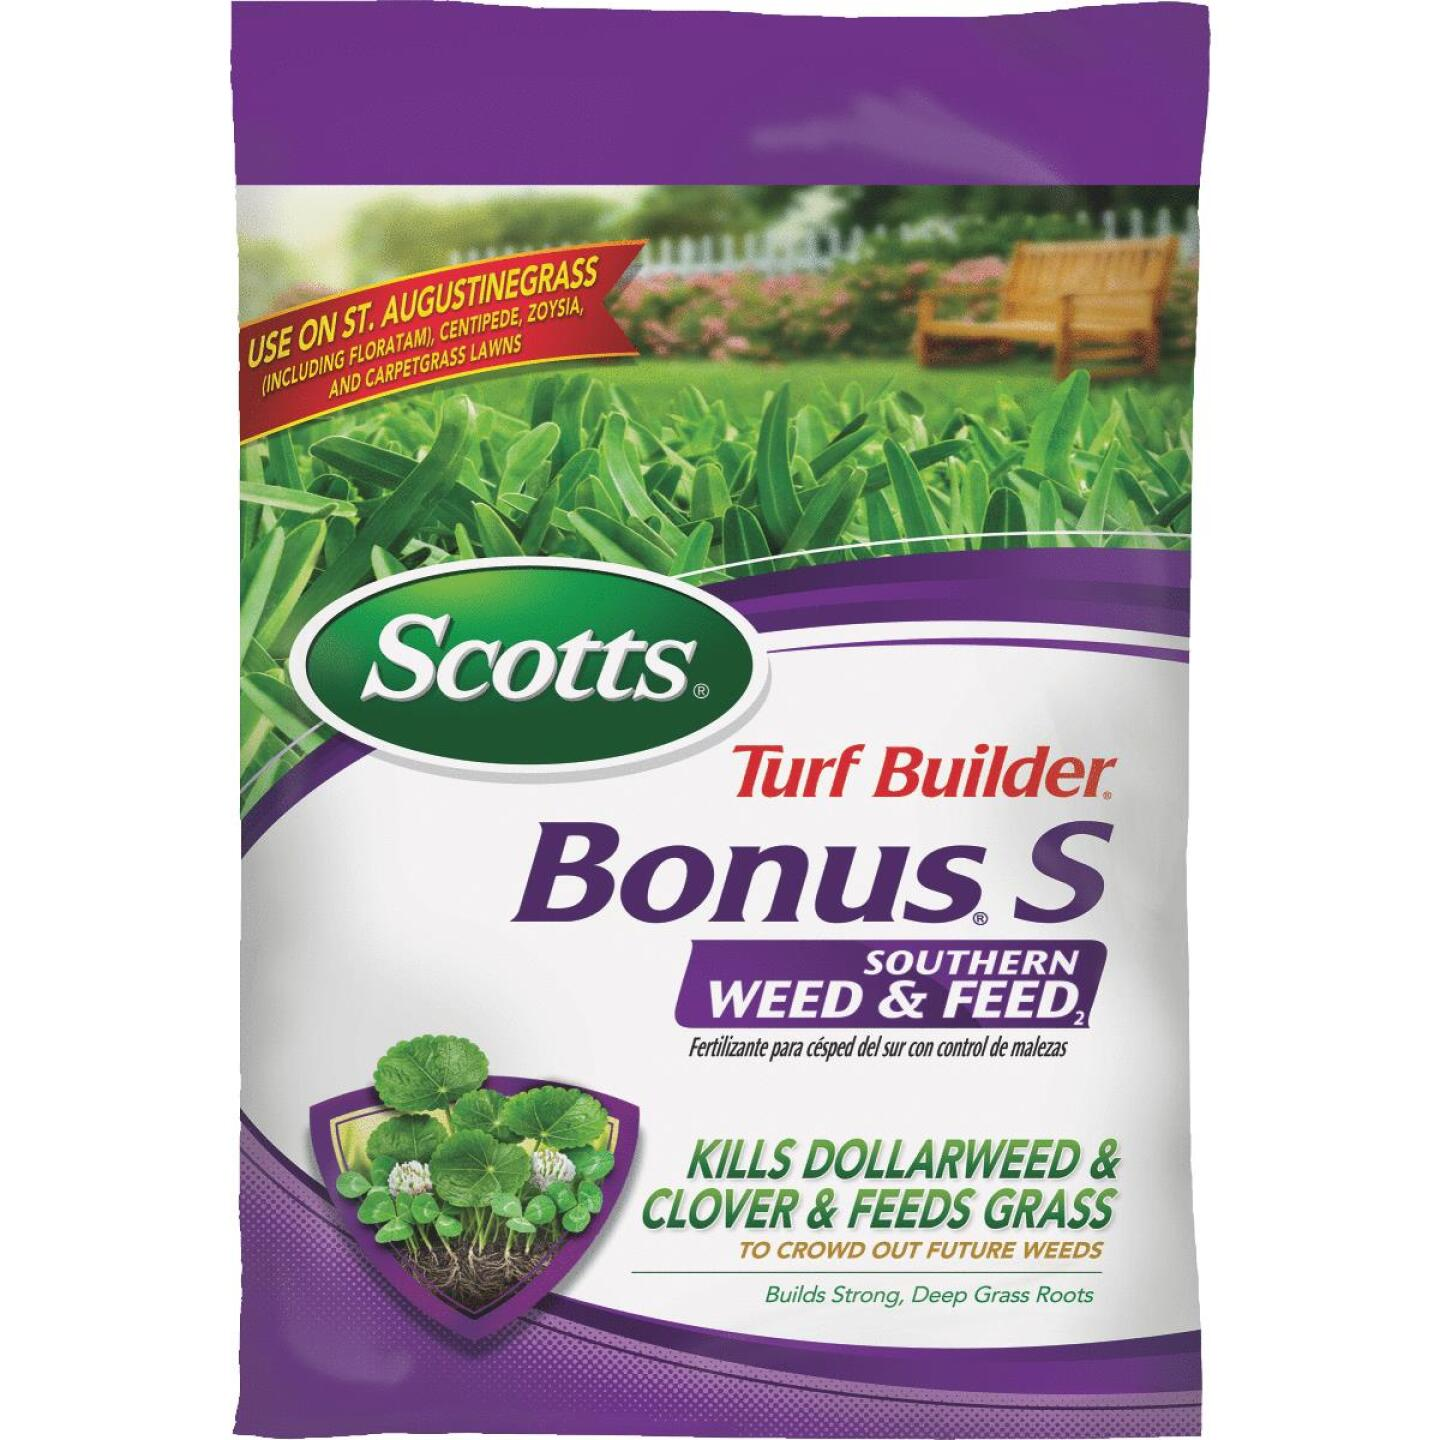 Scotts Turf Builder Bonus S Southern Weed & Feed 33.39 Lb. 10,000 Sq. Ft. 29-0-10 Lawn Fertilizer with Weed Killer Image 1